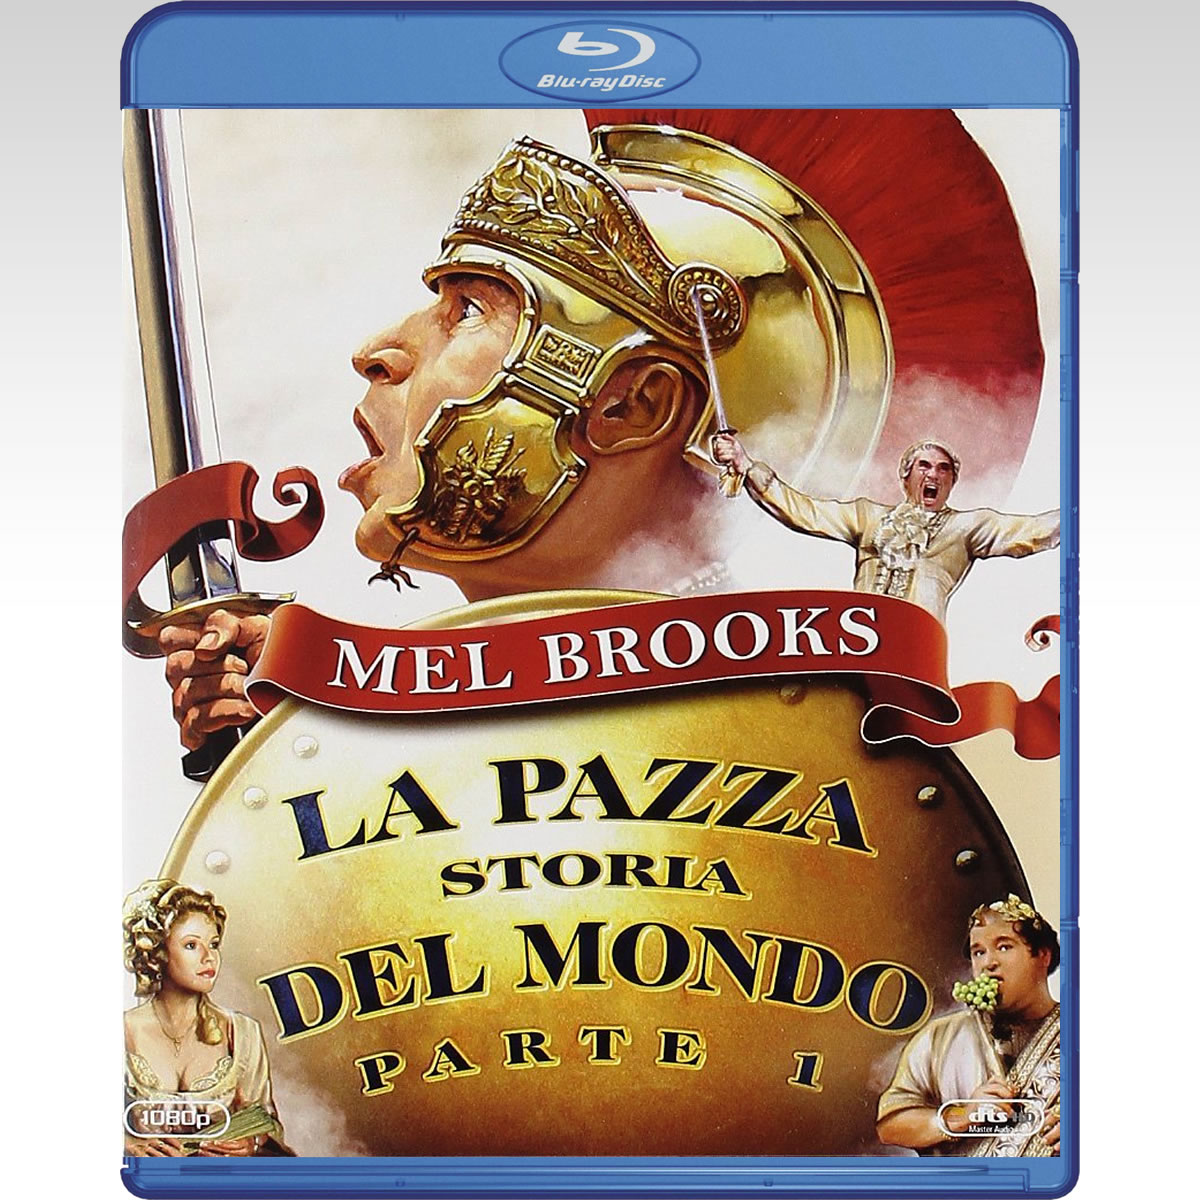 HISTORY OF THE WORLD: PART I - � ����� ������� ��� ������ ����� 1 [��������� �� ���������� ����������] (BLU-RAY)